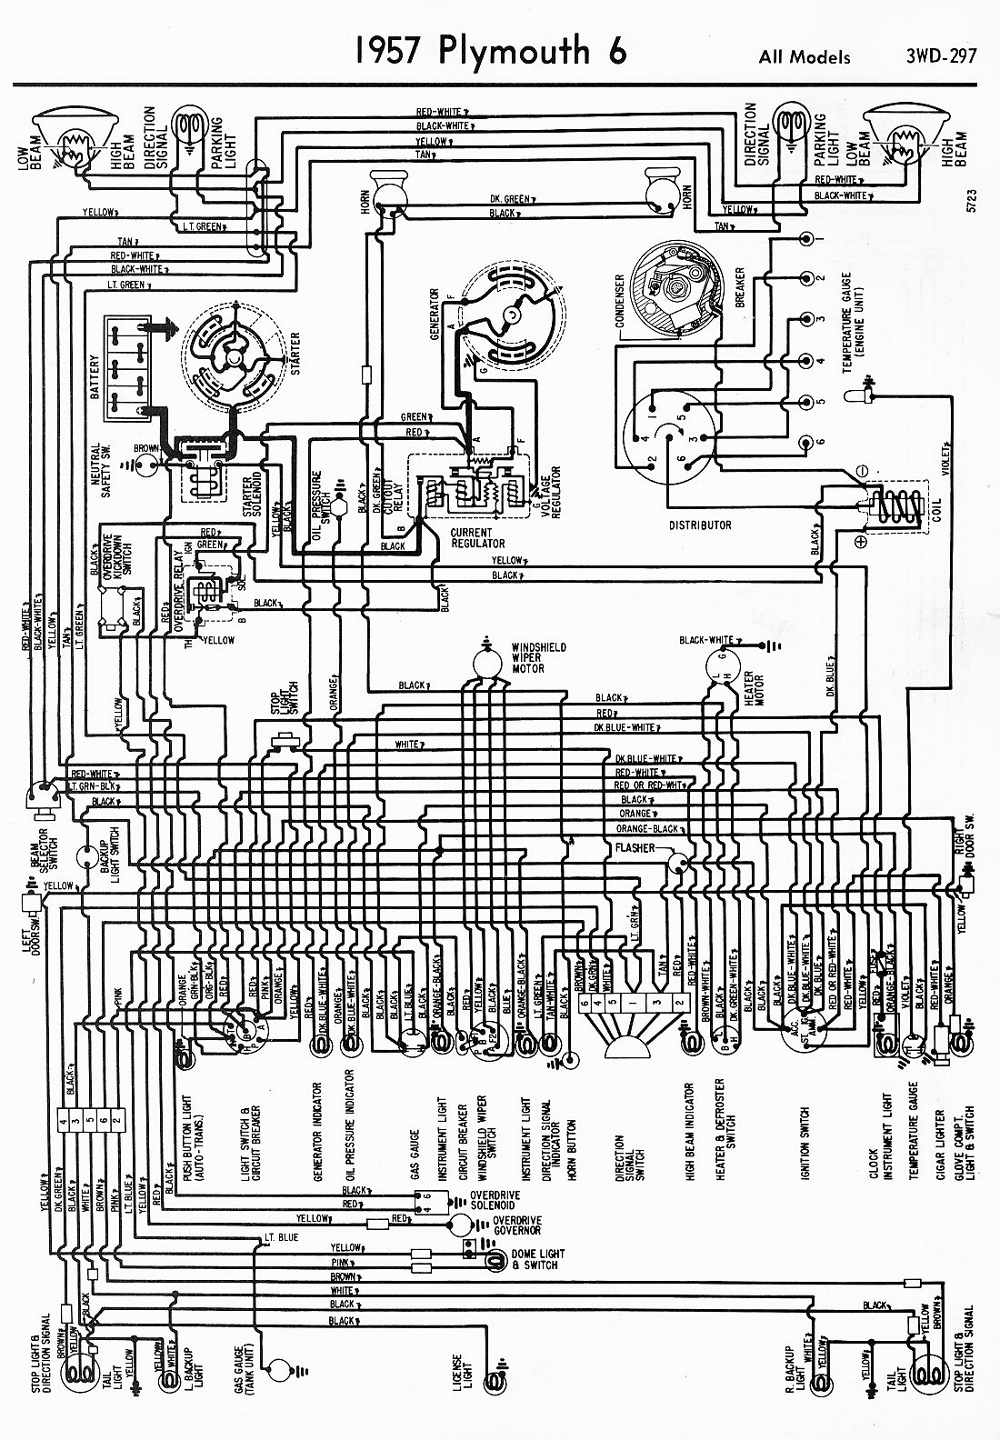 Diagram 1957 Plymouth Wiring Diagram Full Version Hd Quality Wiring Diagram Diagramsbrock Dabliusound It